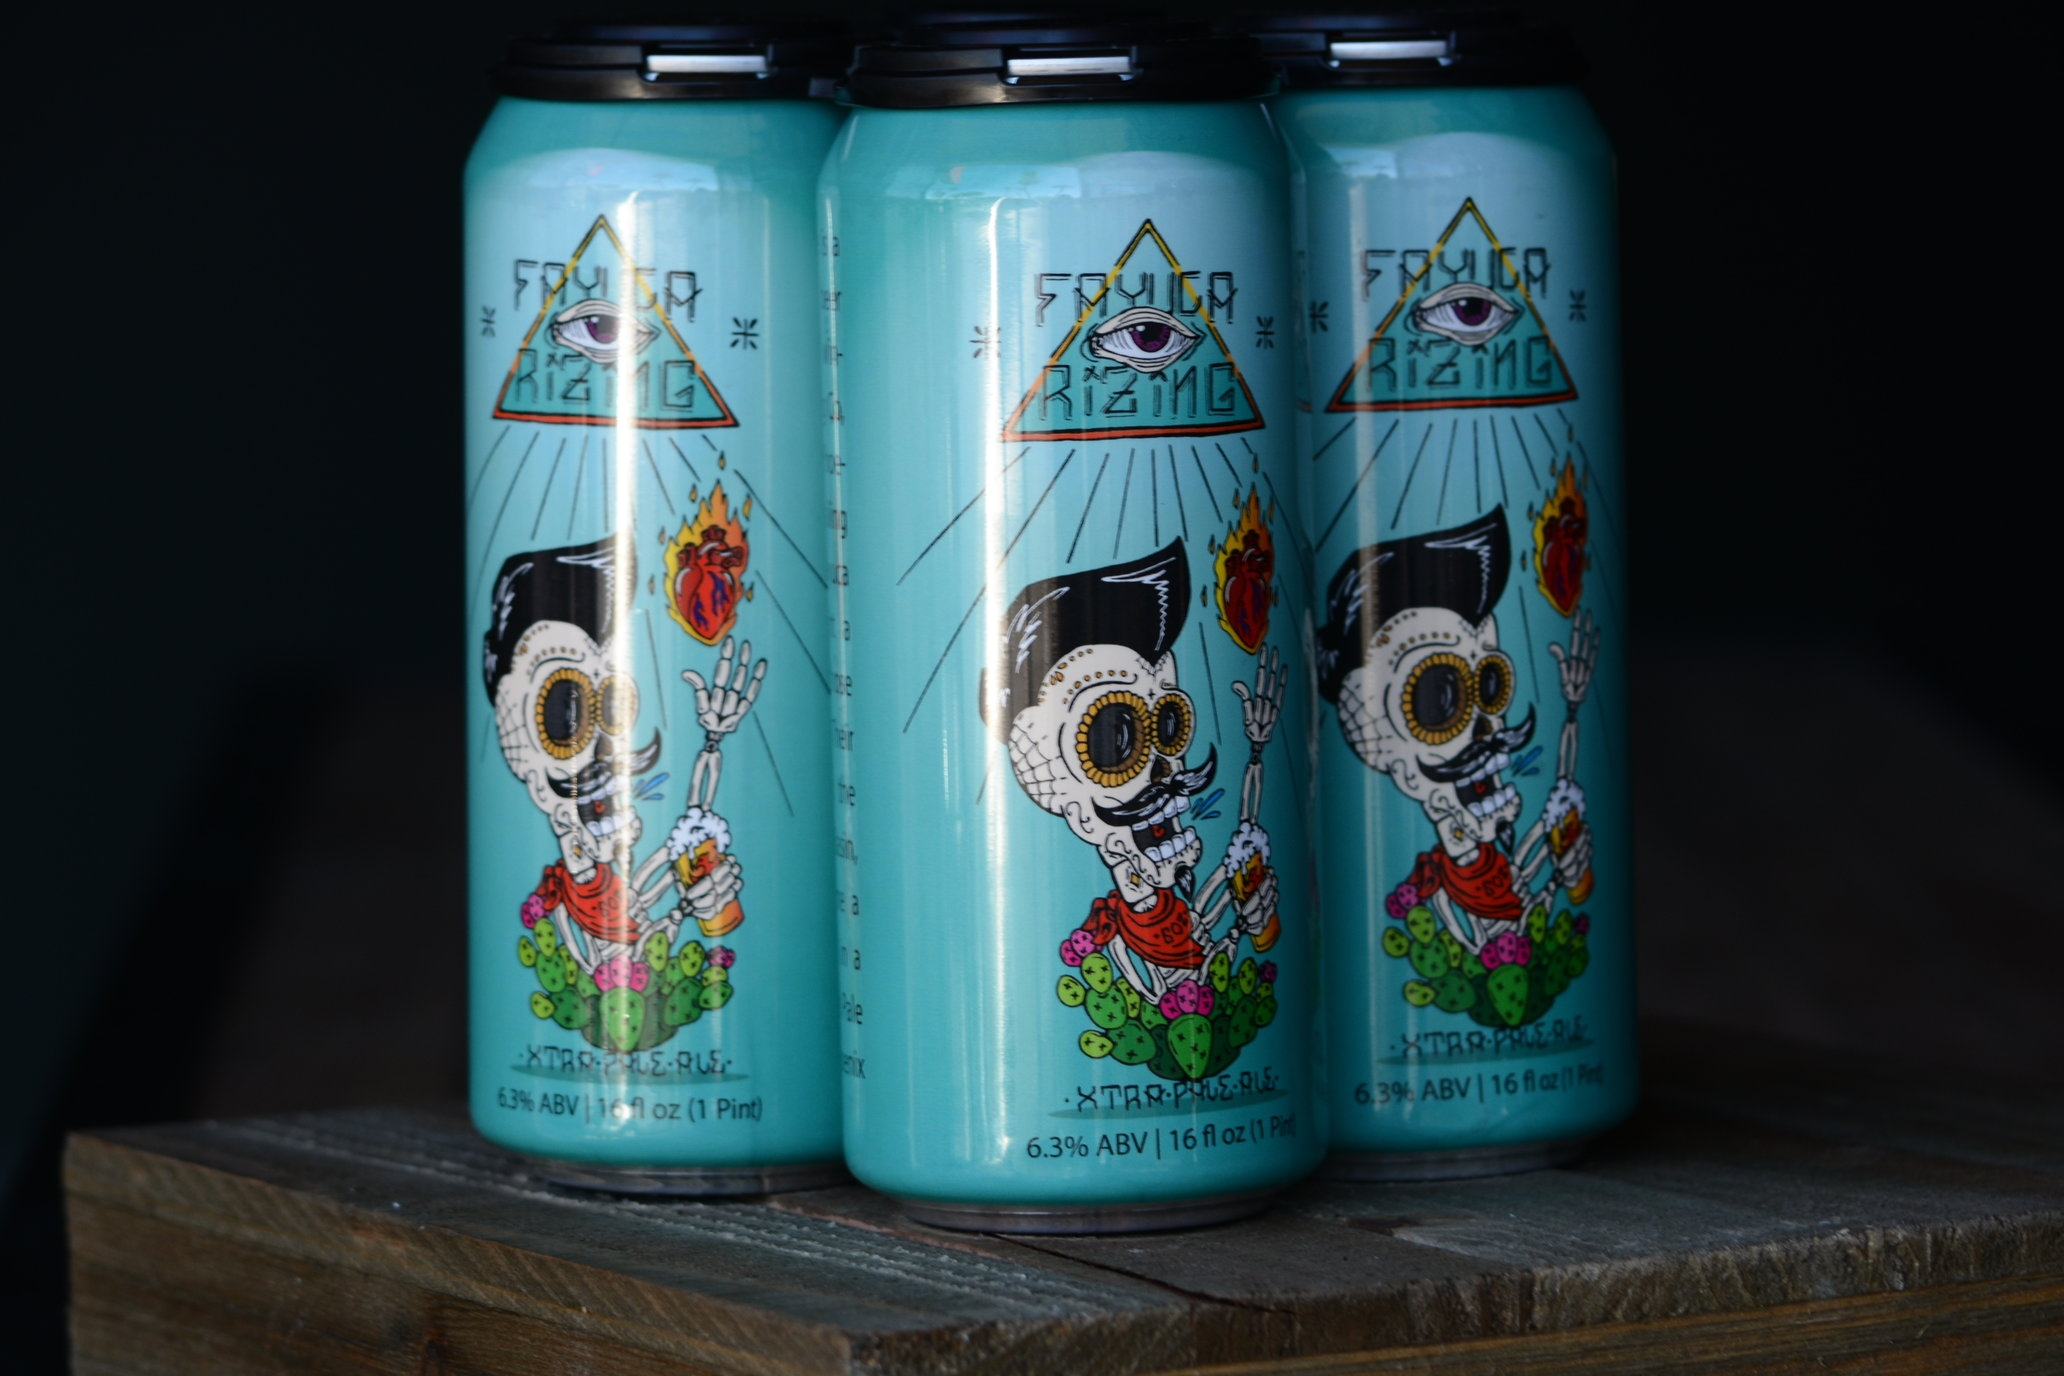 Fayuca Rizing Xtra Pale Ale - Ranked the #56 best beer in the world and #3 best American Pale Ale, this beer is brewed in collaboration with and specifically for local Phoenix band Fayuca!6.3% ABV 60 IBU